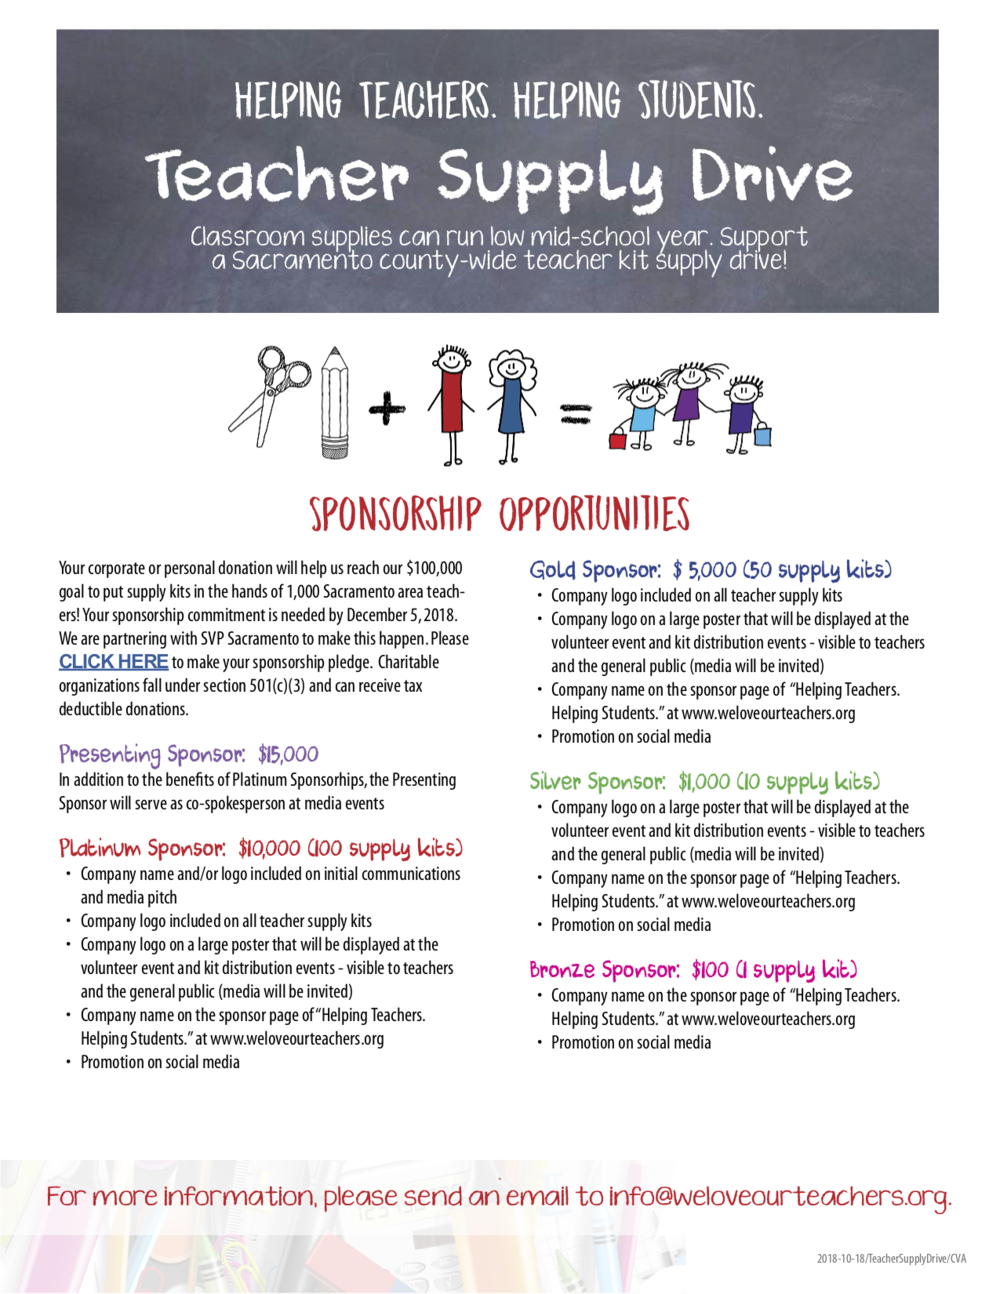 2018 Supply Drive Sponsorships.png